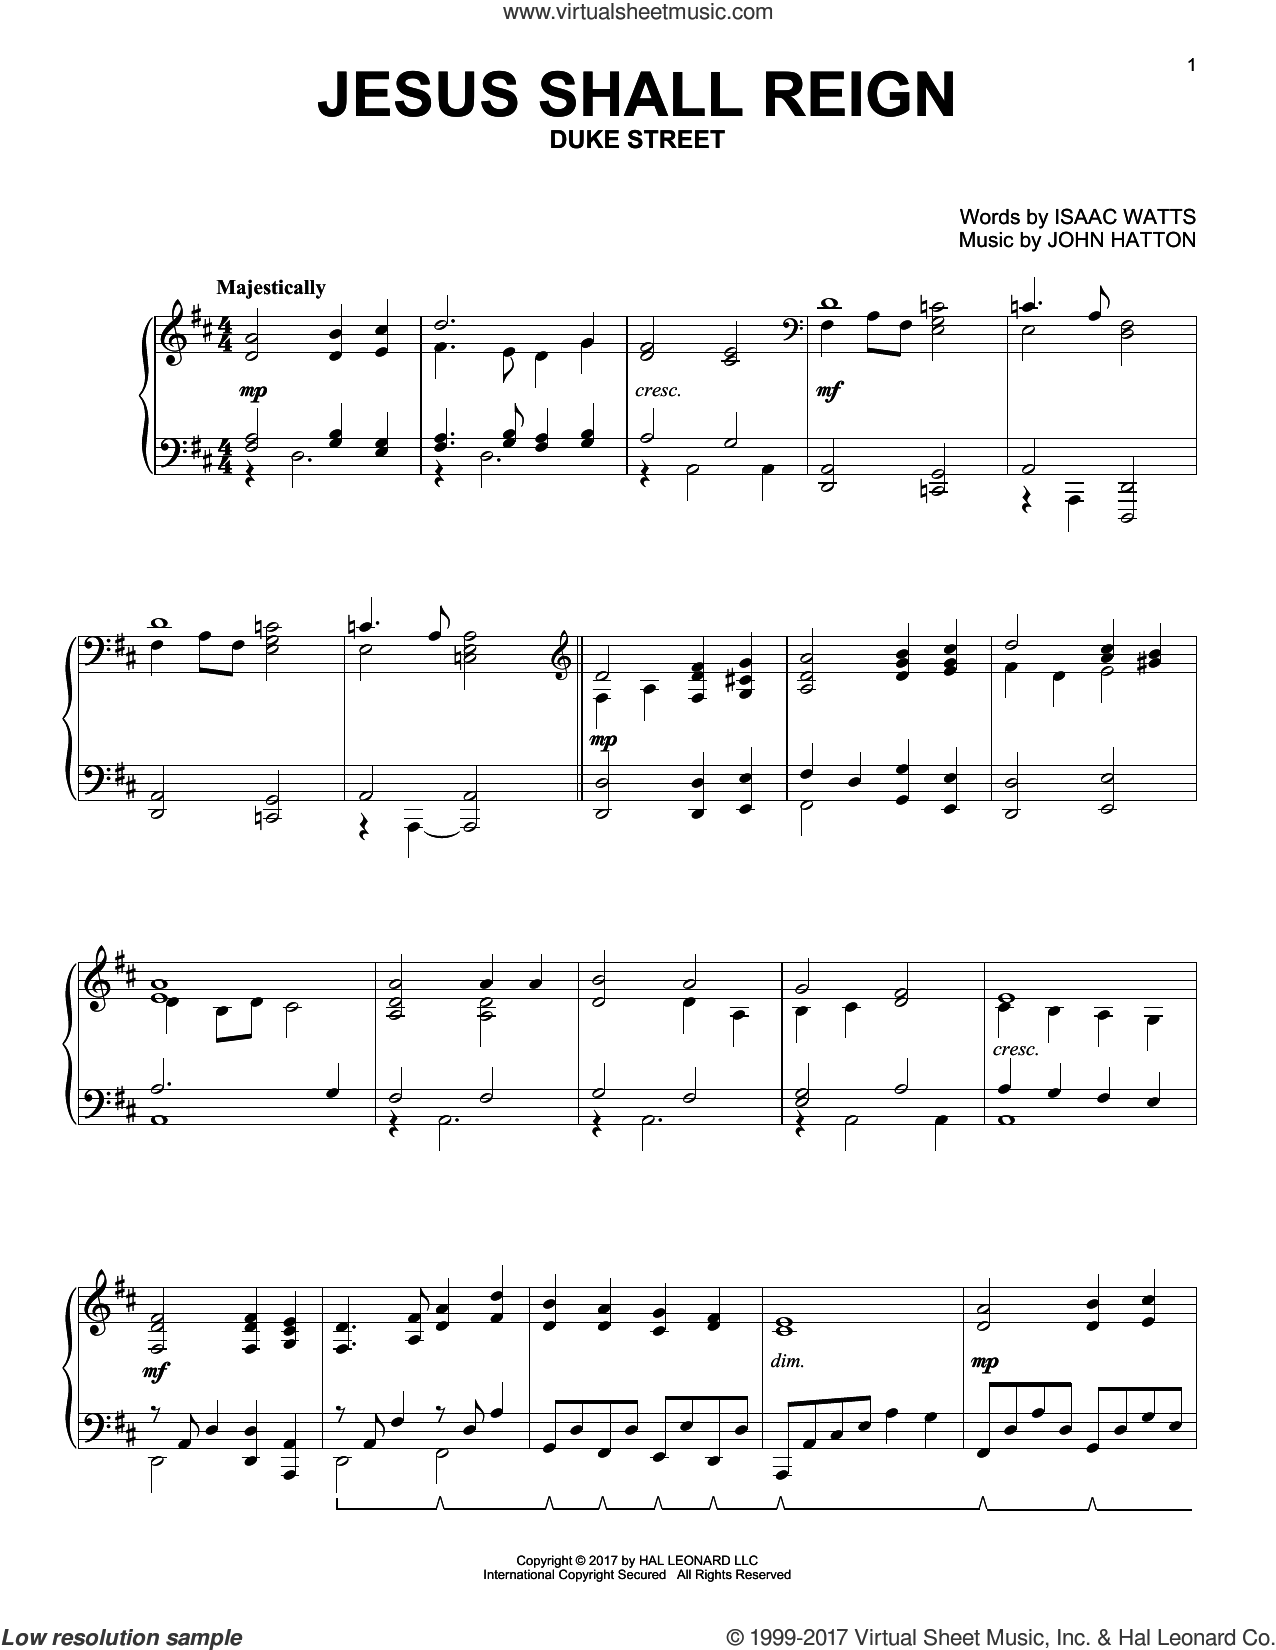 Jesus Shall Reign sheet music for piano solo by Isaac Watts and John Hatton, intermediate skill level